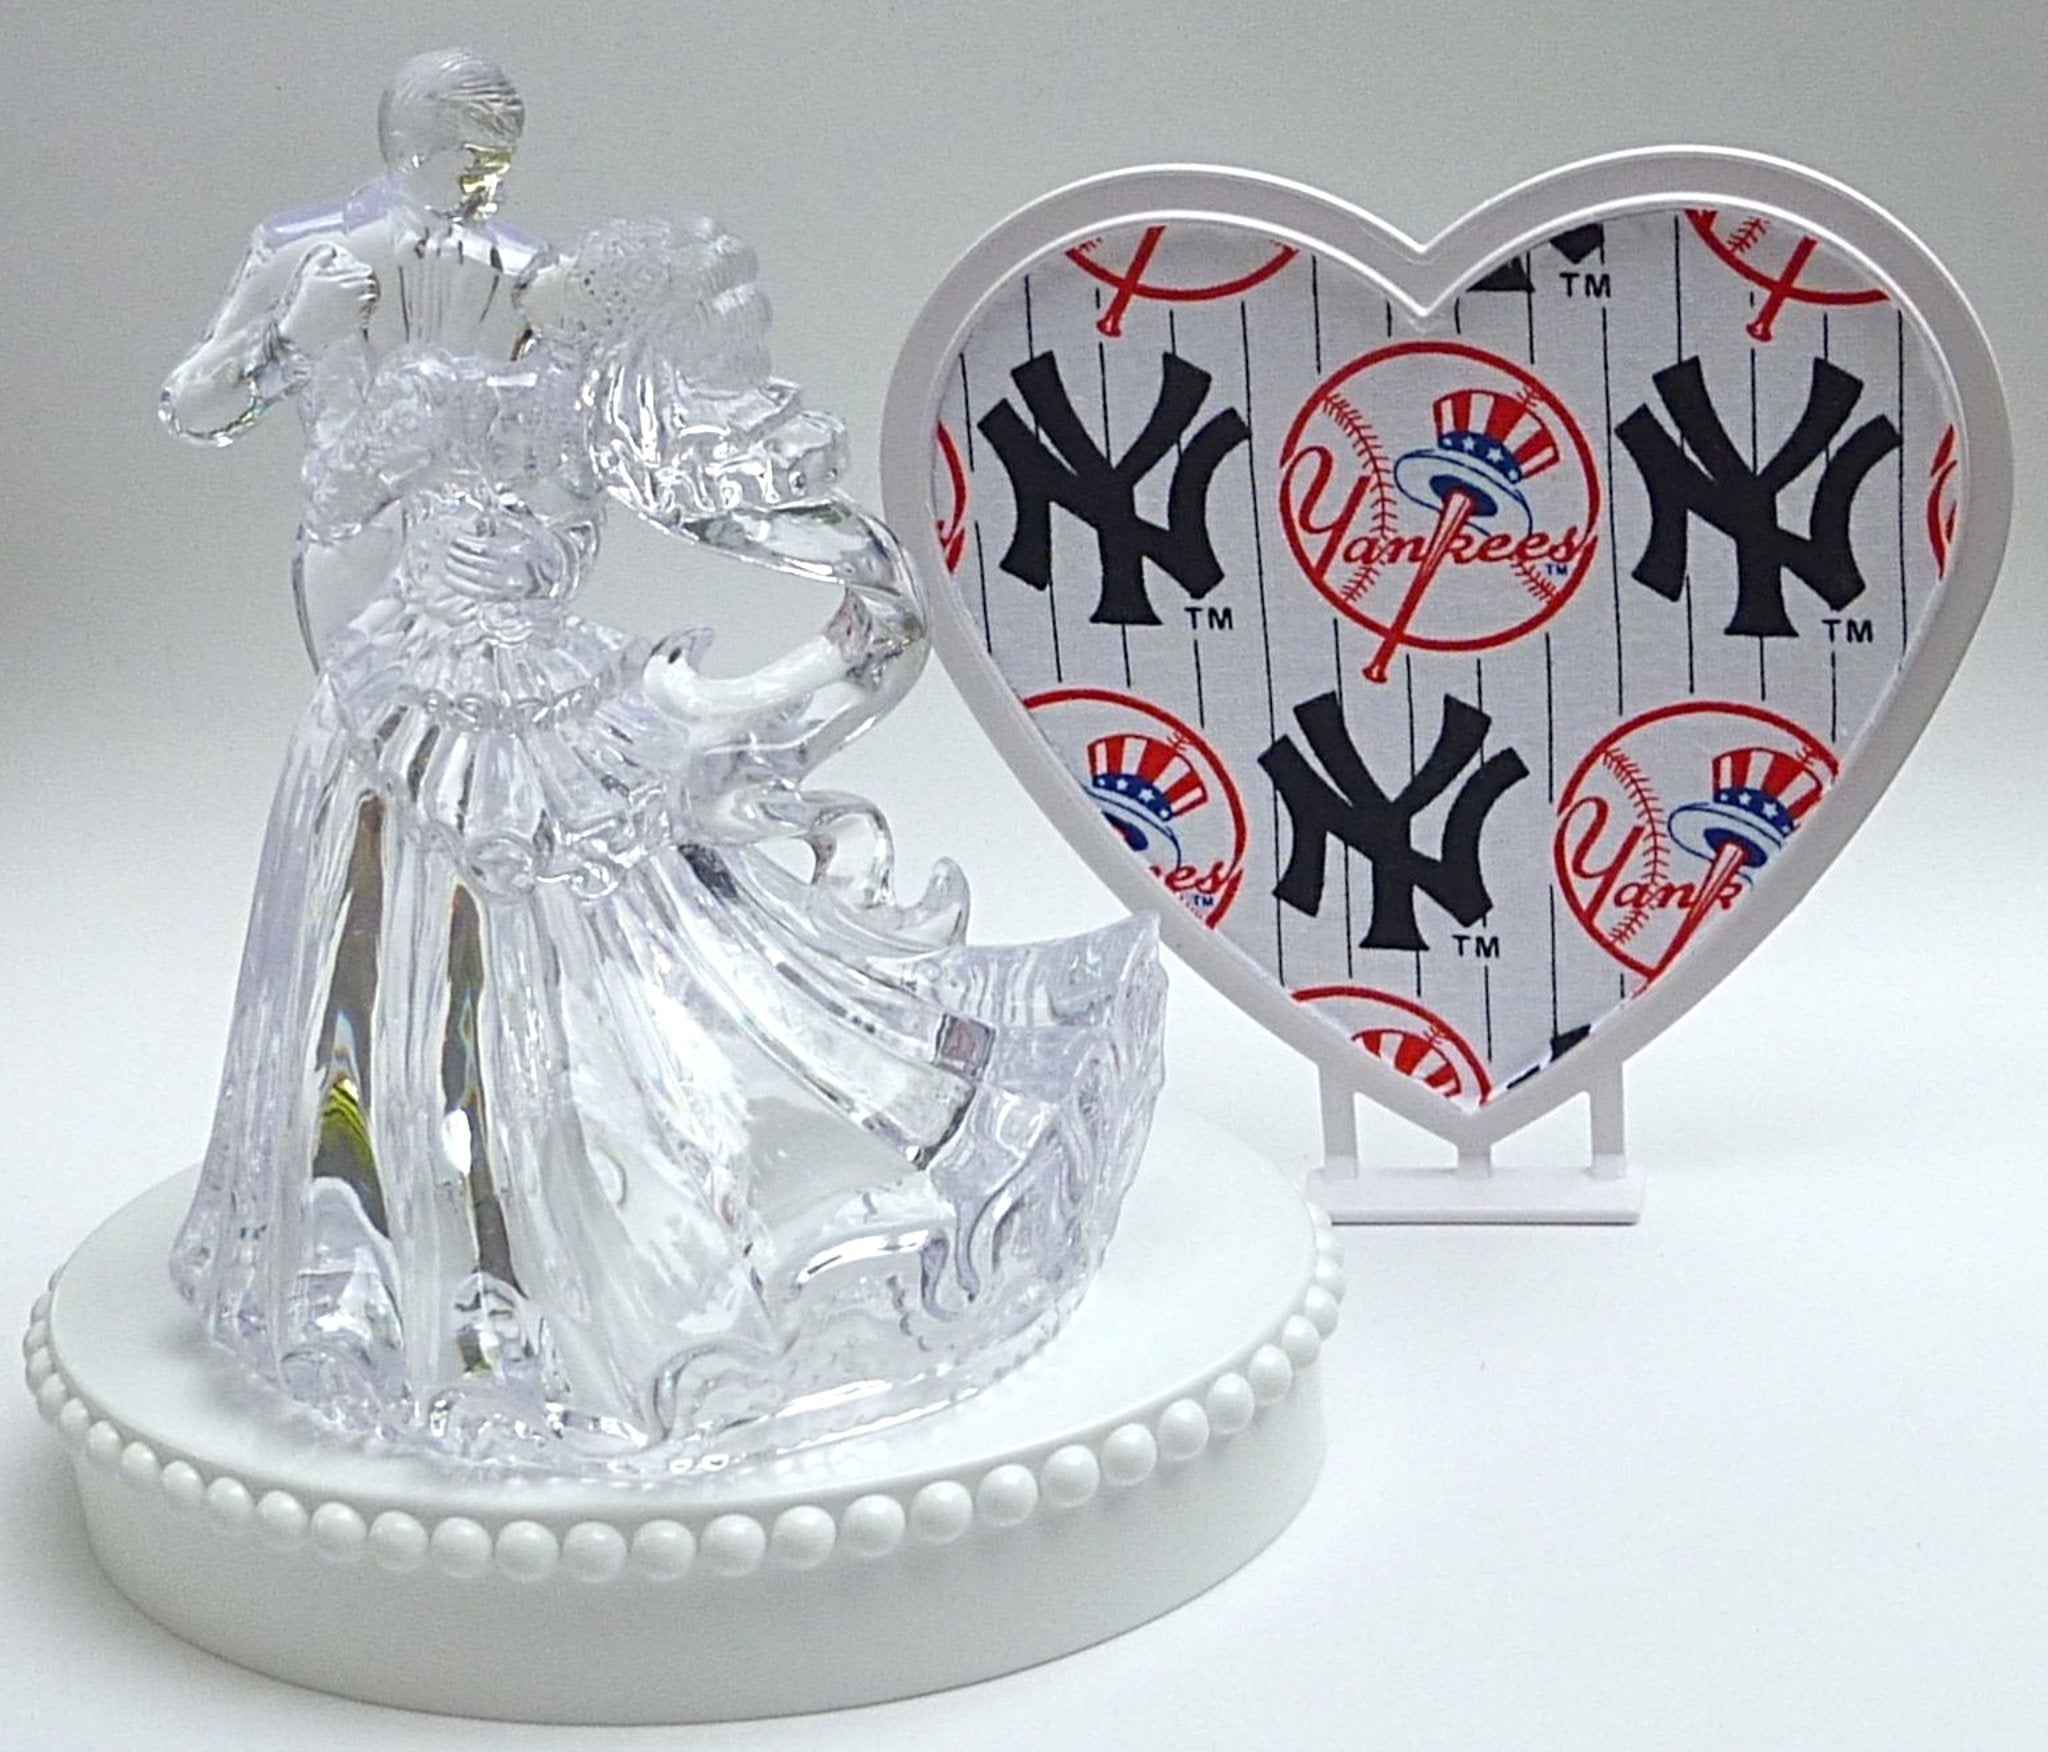 Yankees wedding cake topper FunWeddingThings.com New York baseball fans NY